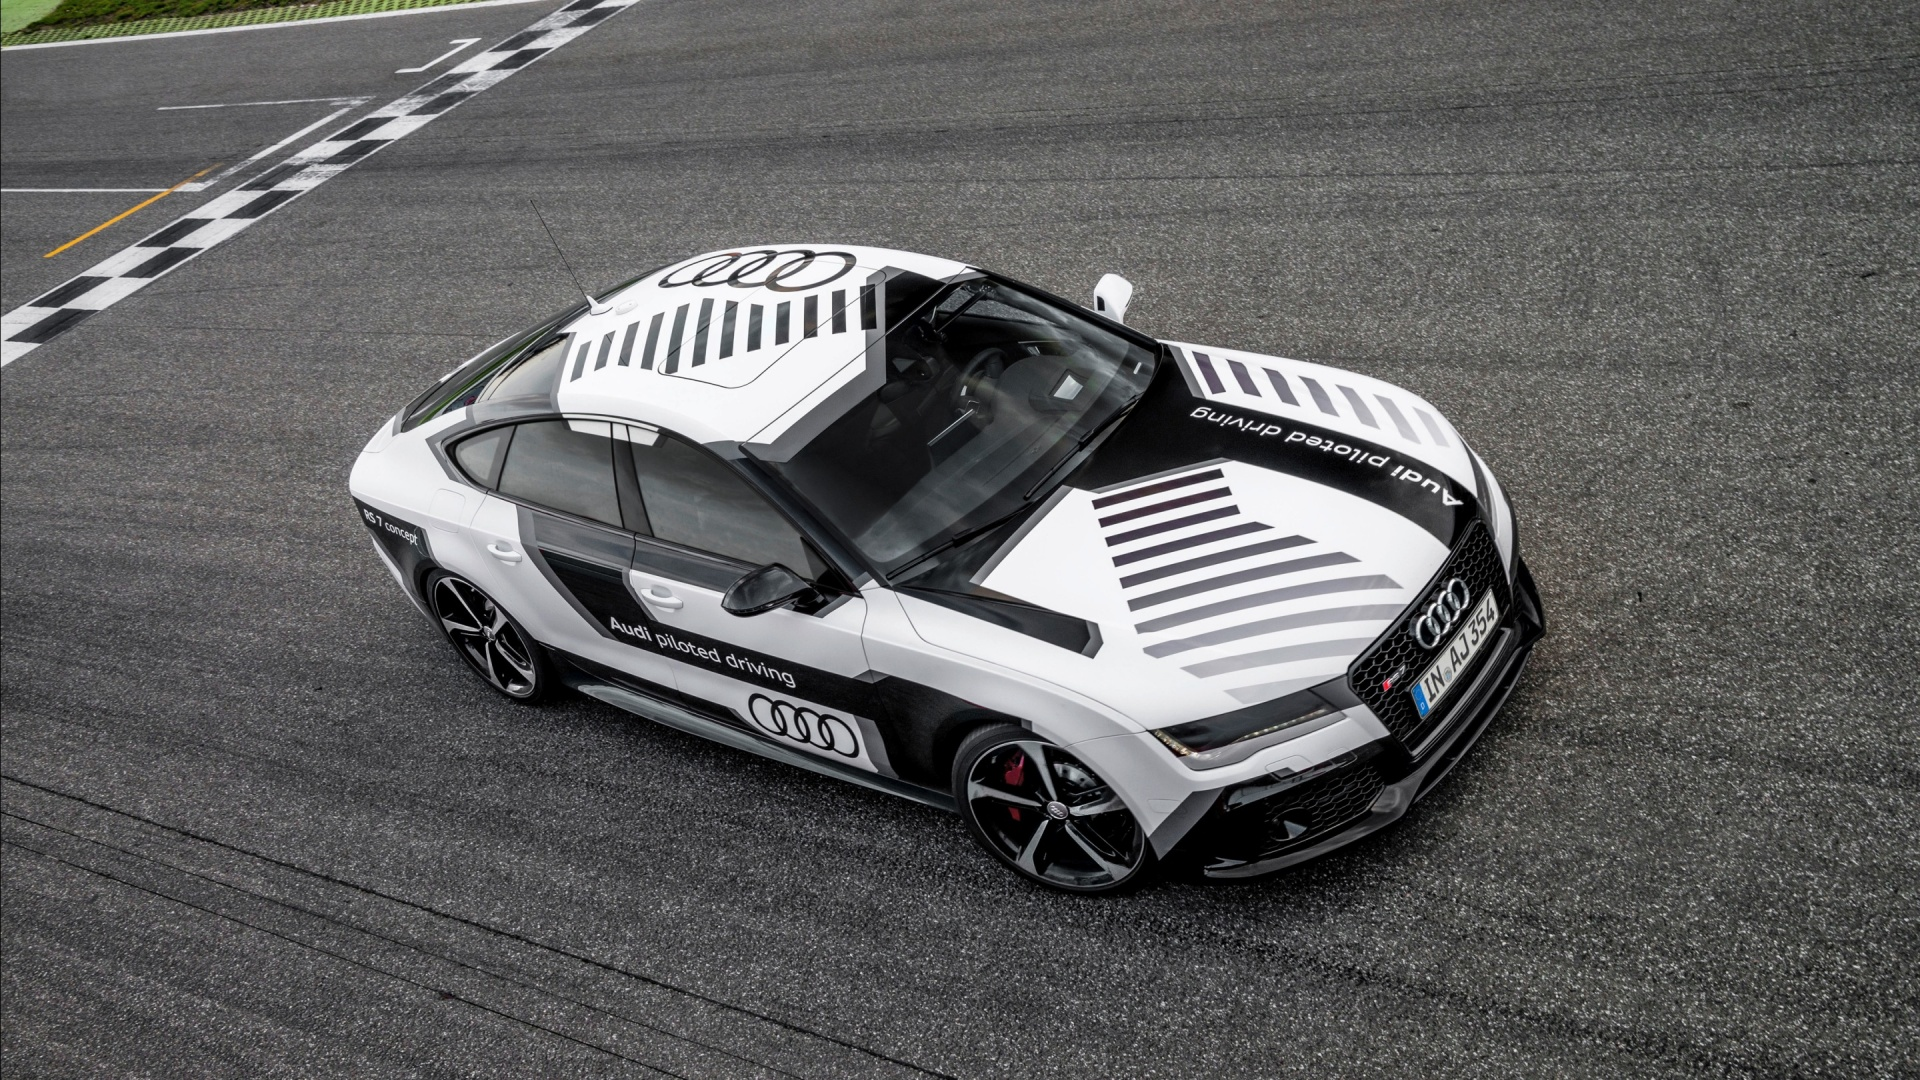 Audi Rs7 2014 Wallpapers 1920x1080 1066066